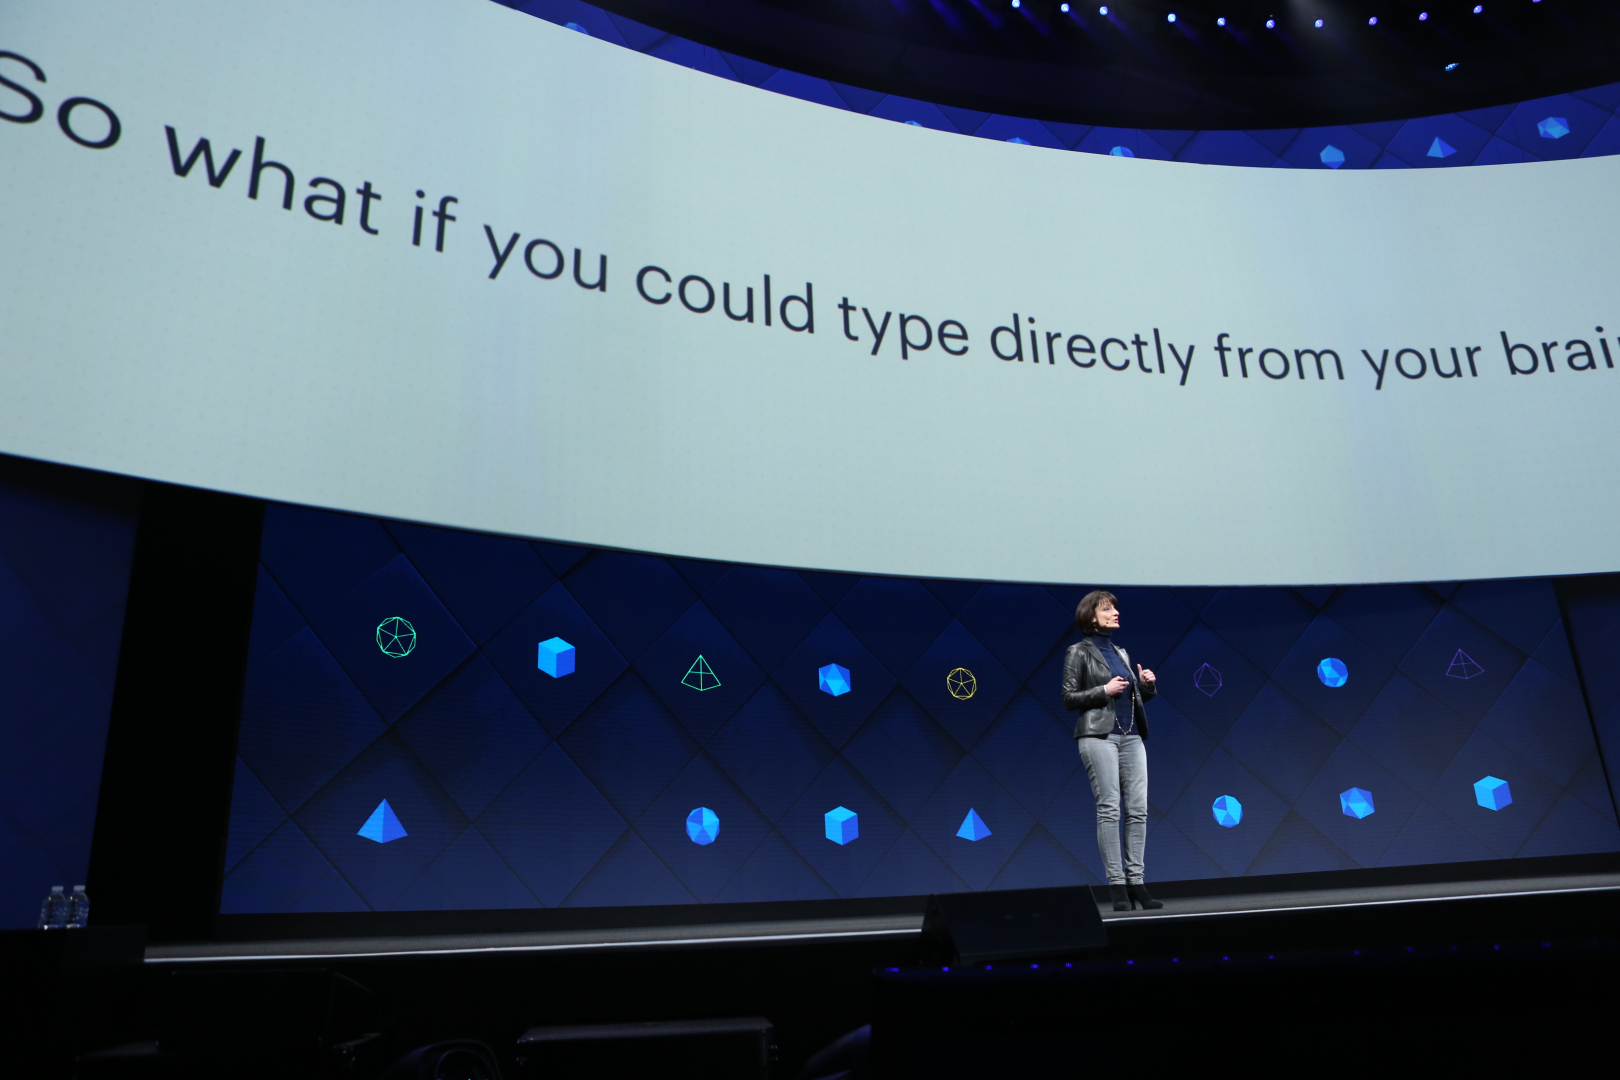 Facebook Should Use Facebook if it Wants Answers to Hard Questions